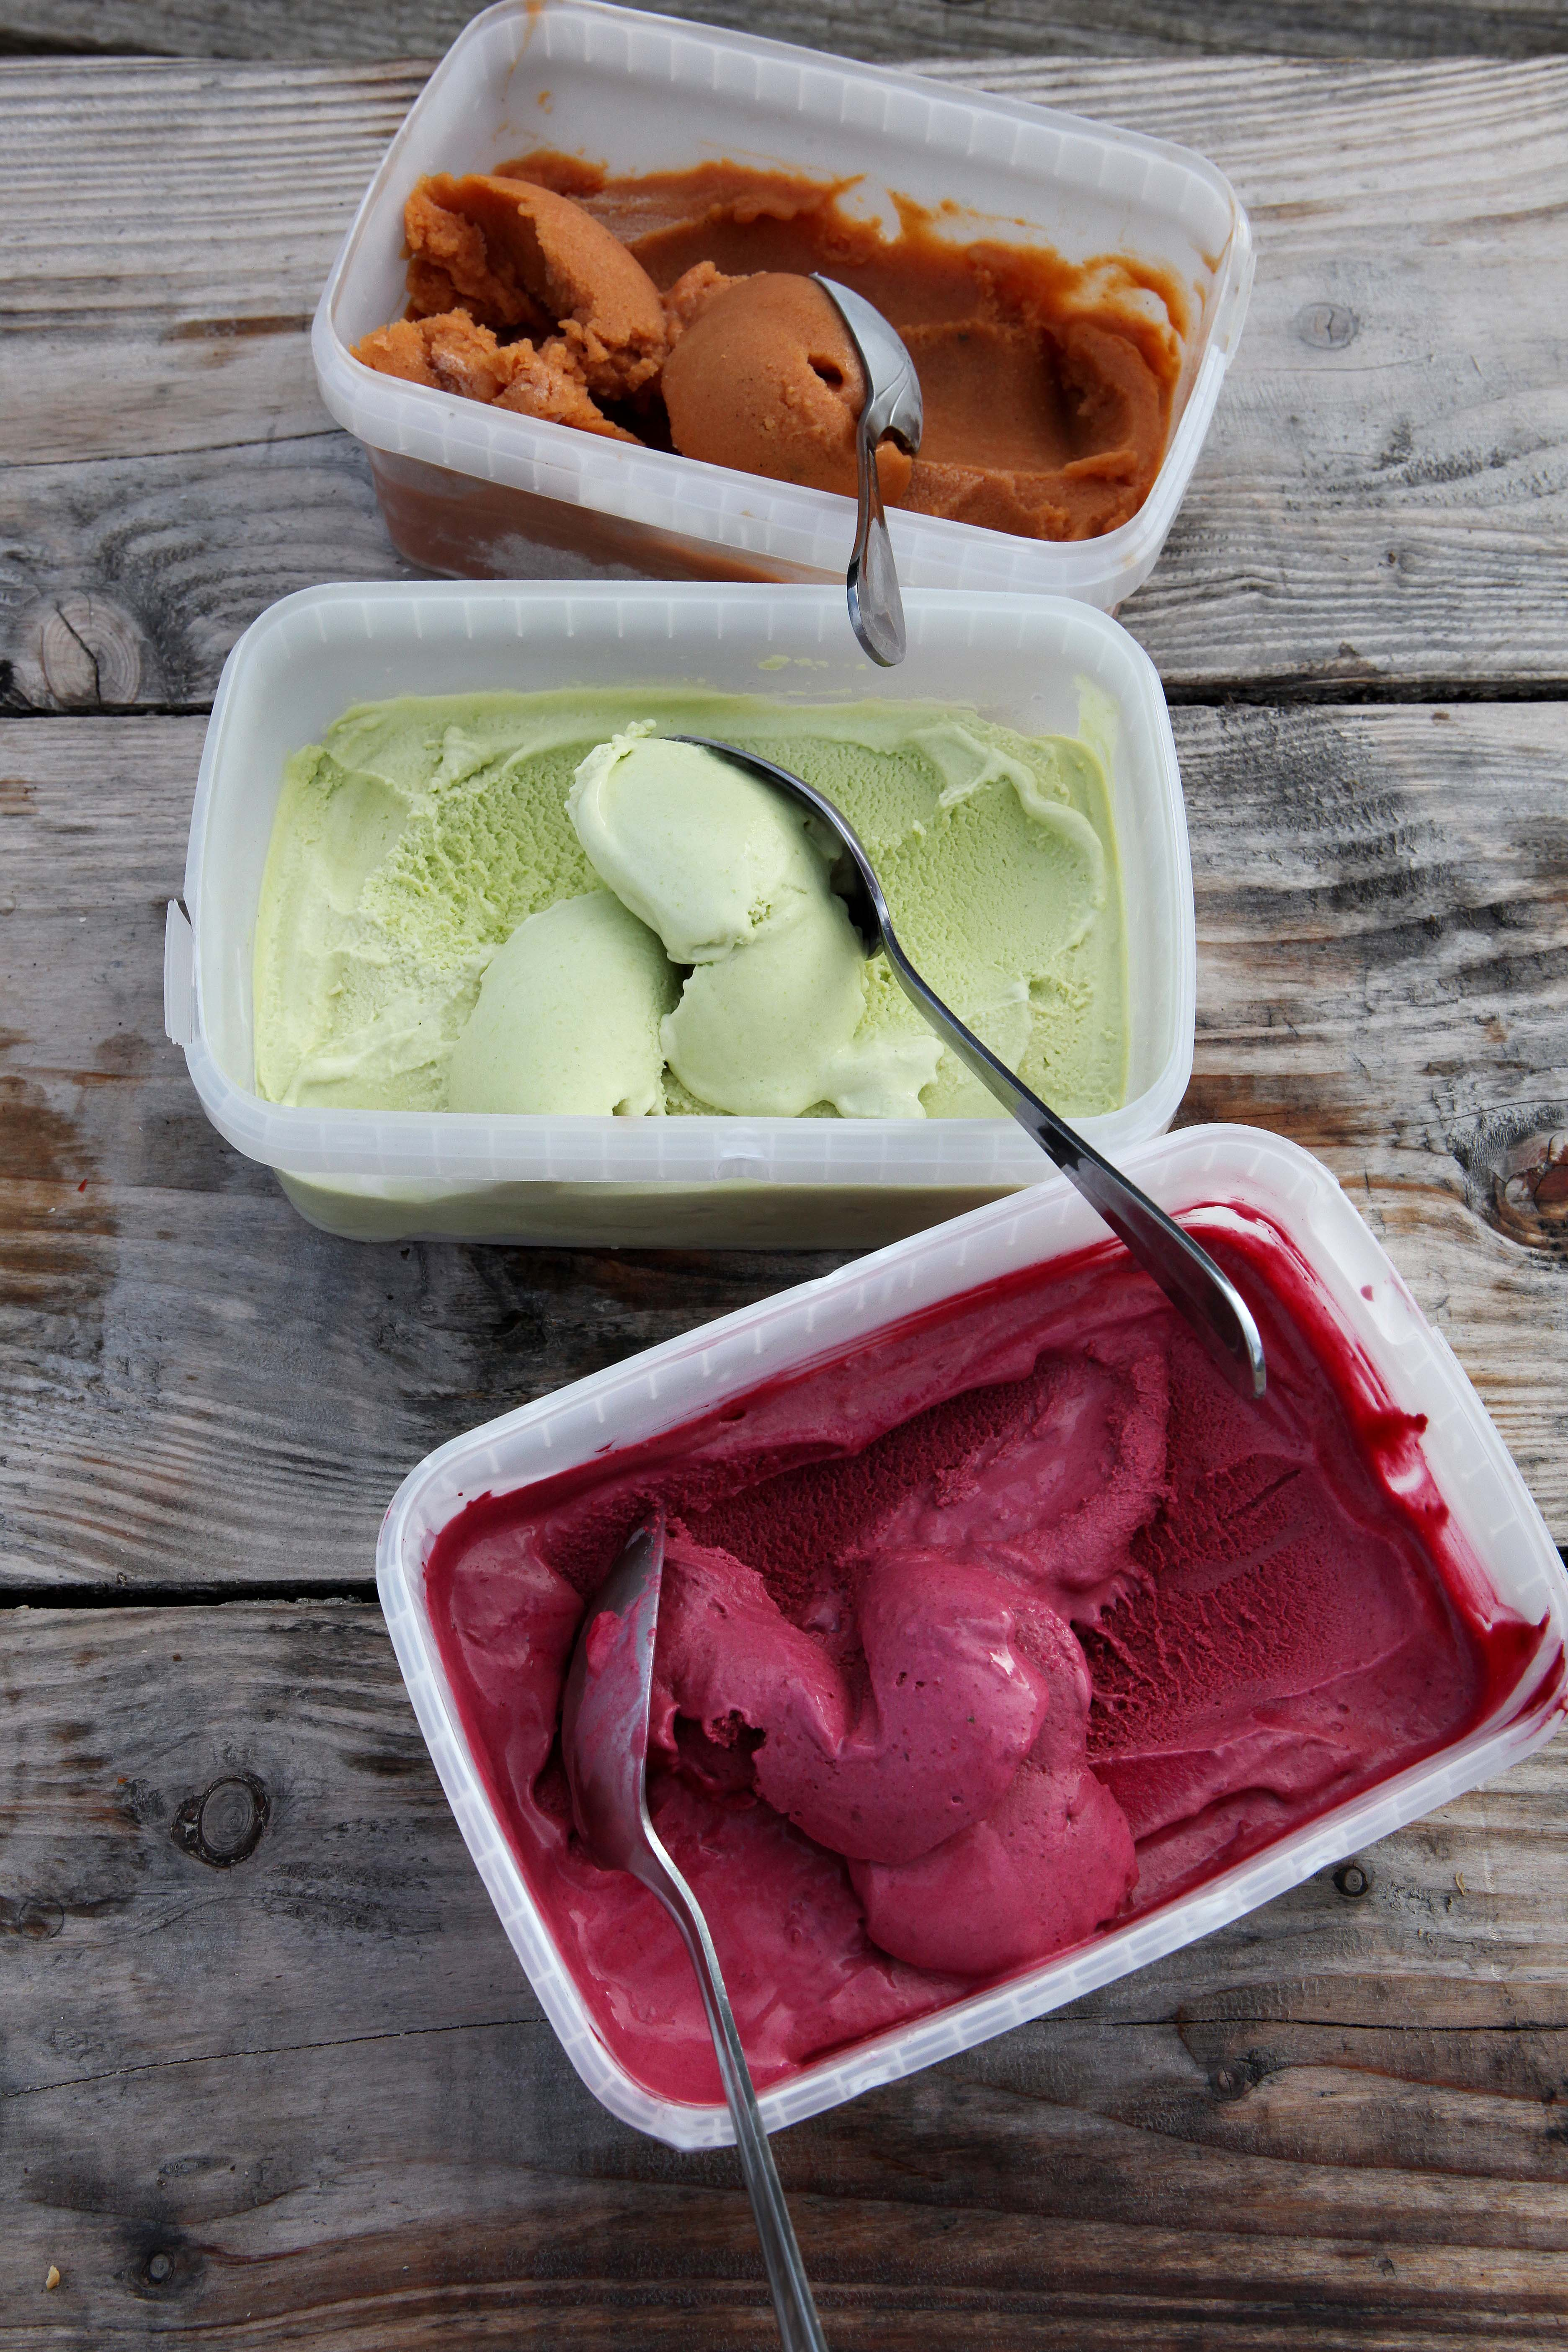 River Cottage's Chocolate and beetroot ice cream